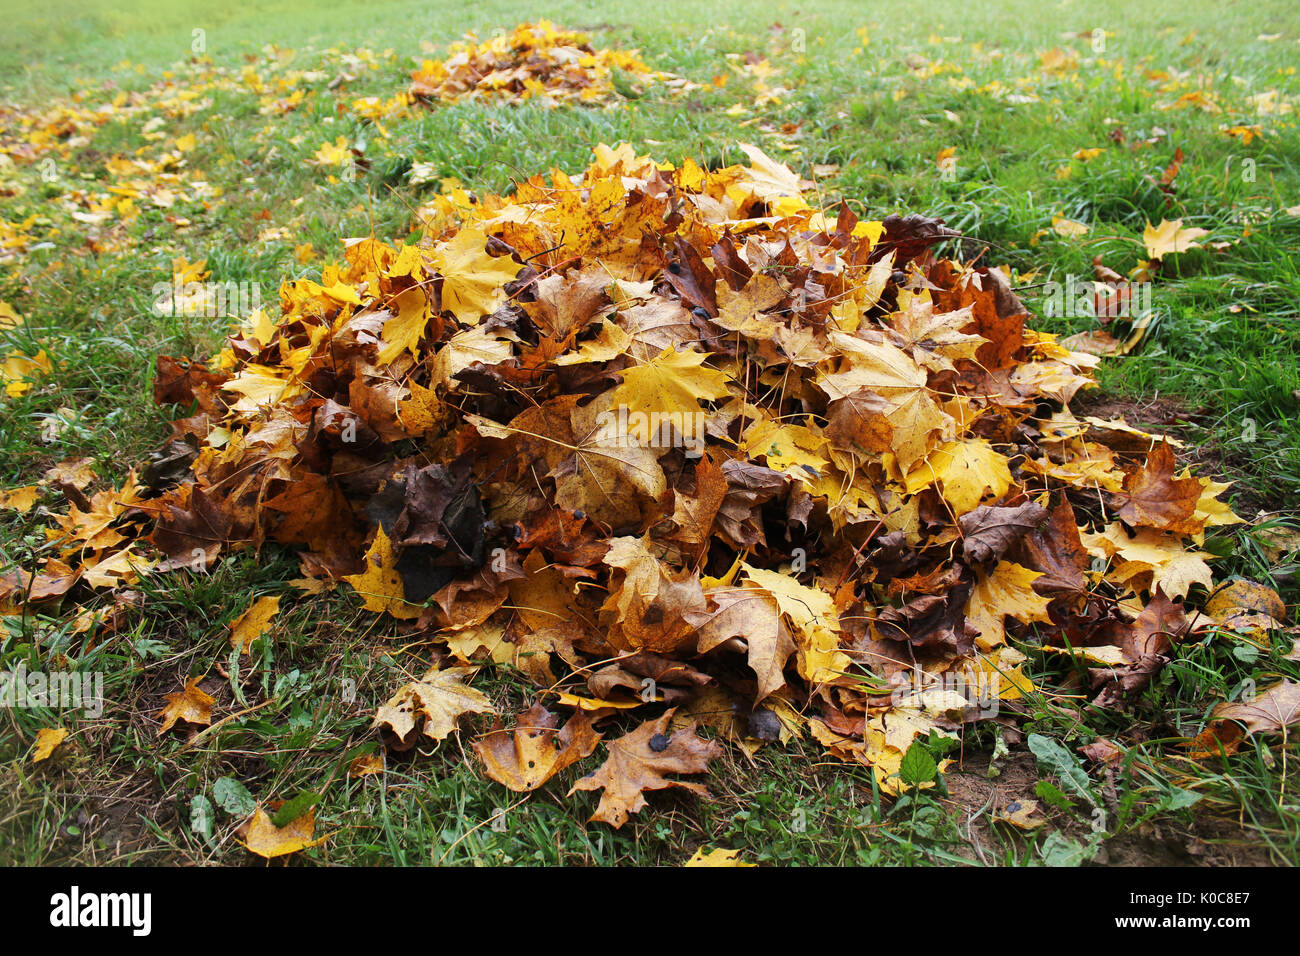 Pile of fallen leaves in autumn park. Fall background - Stock Image